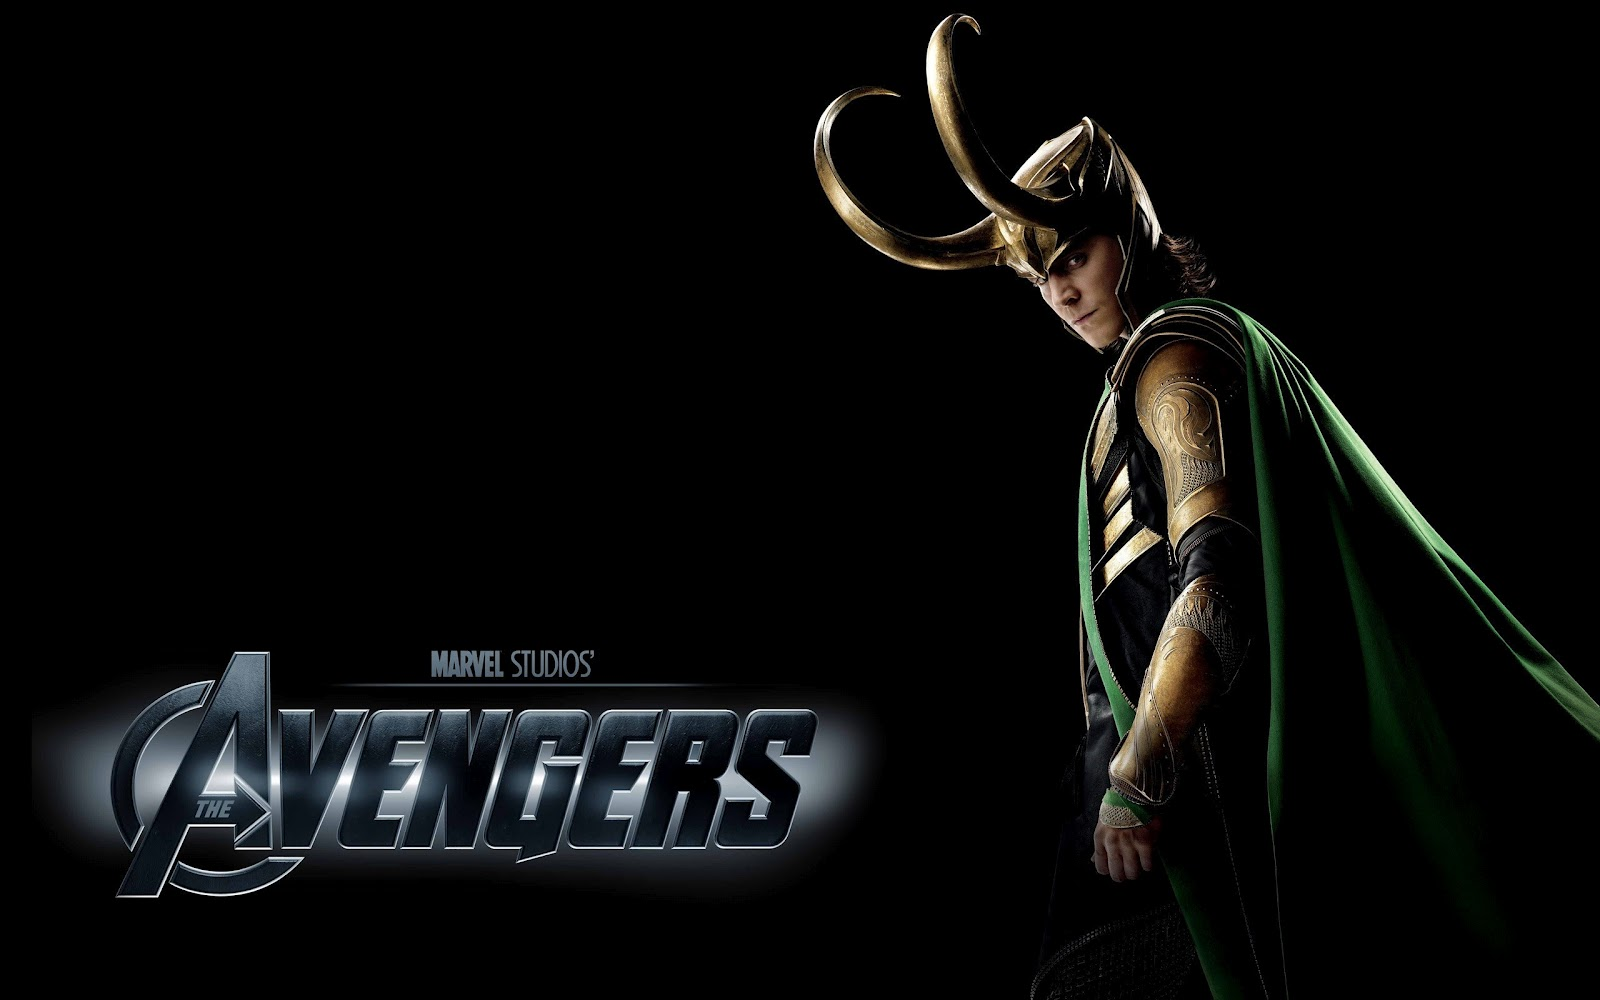 http://1.bp.blogspot.com/-ovPdlOiszXo/UCegCaUyM5I/AAAAAAAADrg/2hvtQIlFvaM/s1600/Avengers_Loki_Tom_Hiddleston_HD_Wallpaper.jpg